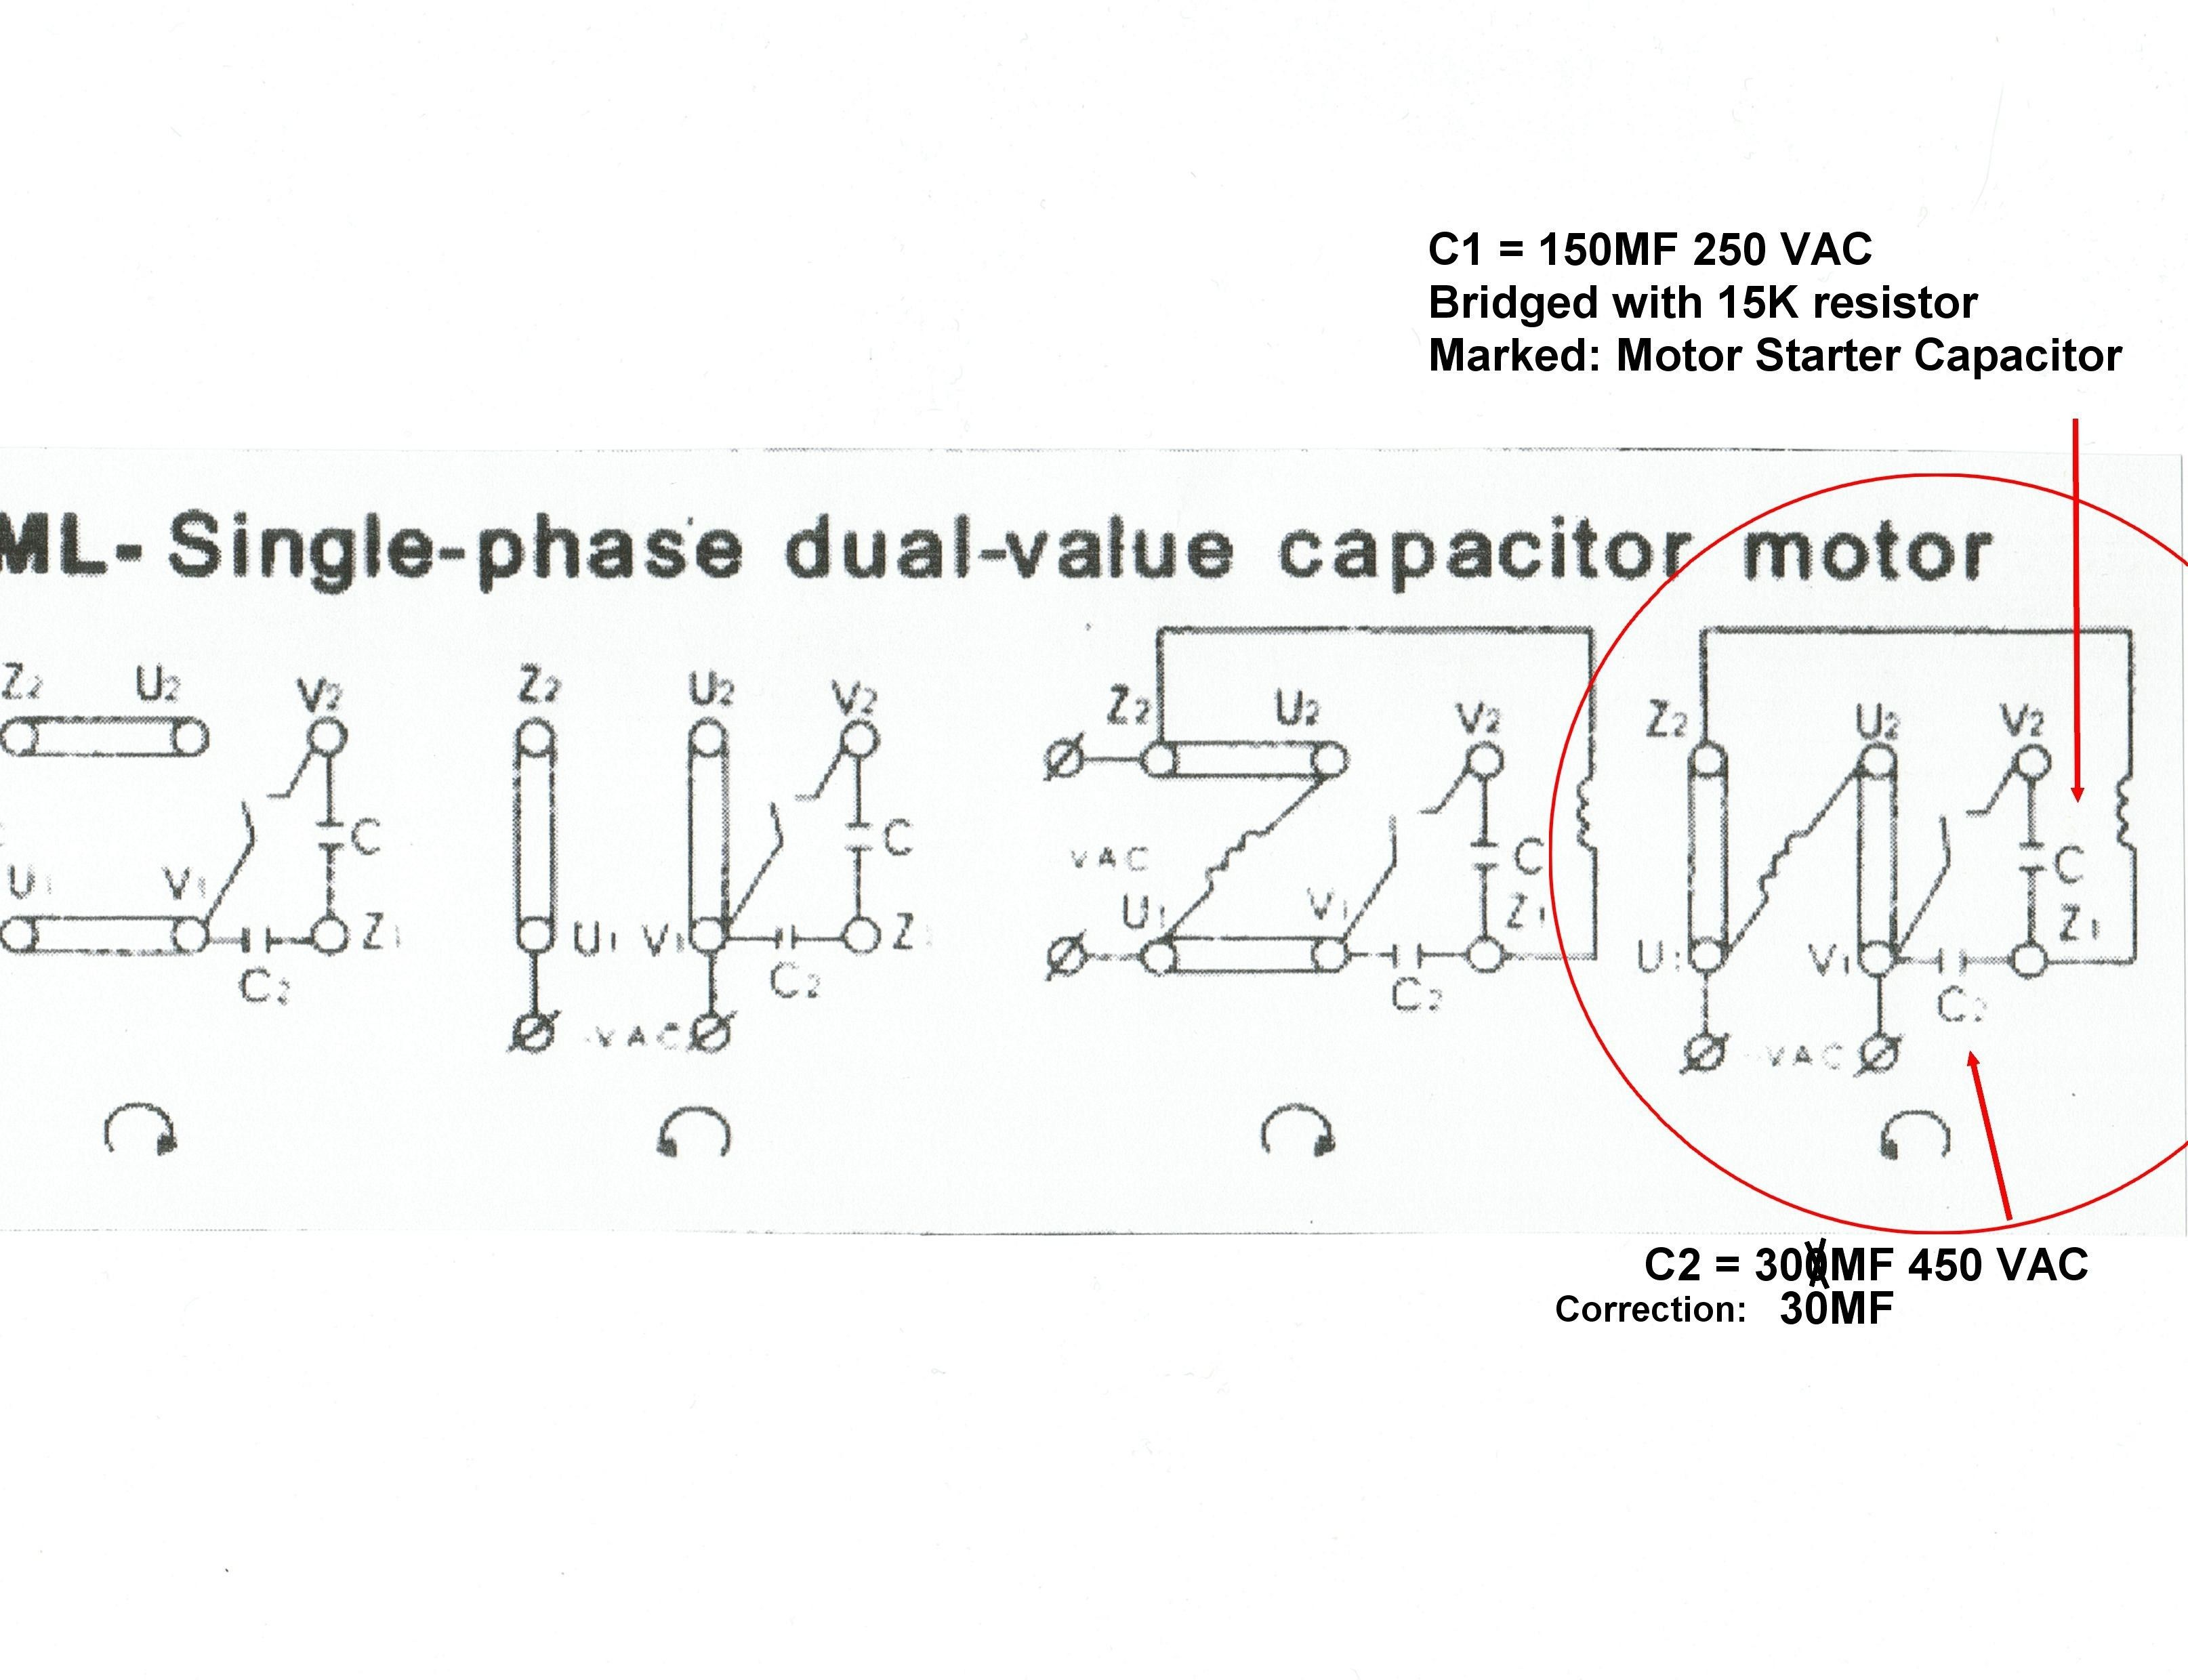 230v motor wiring diagram read all wiring diagram 230V 1 Phase Wiring Diagram